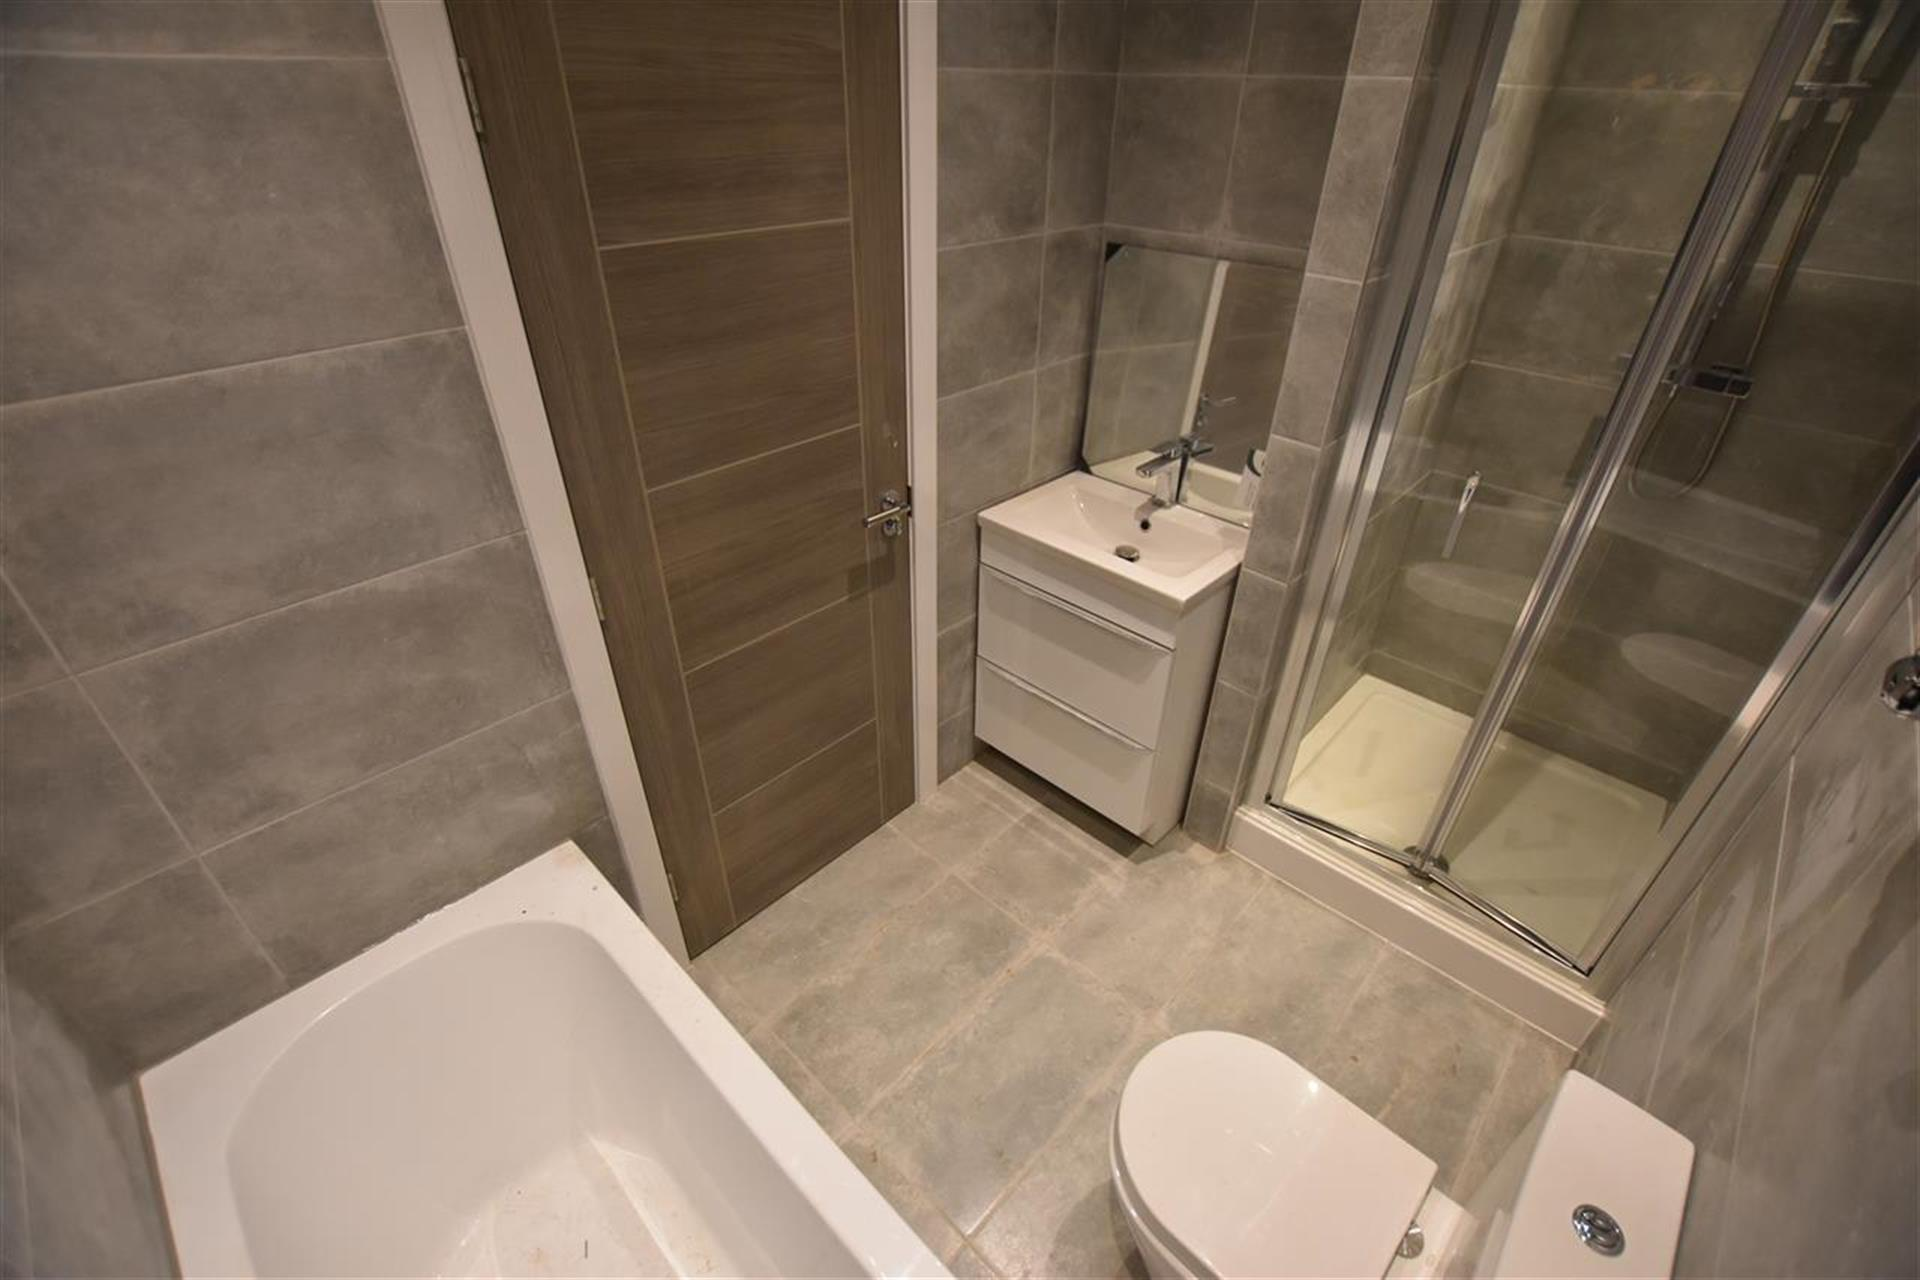 3 Bedroom House For Sale - Master Bathroom